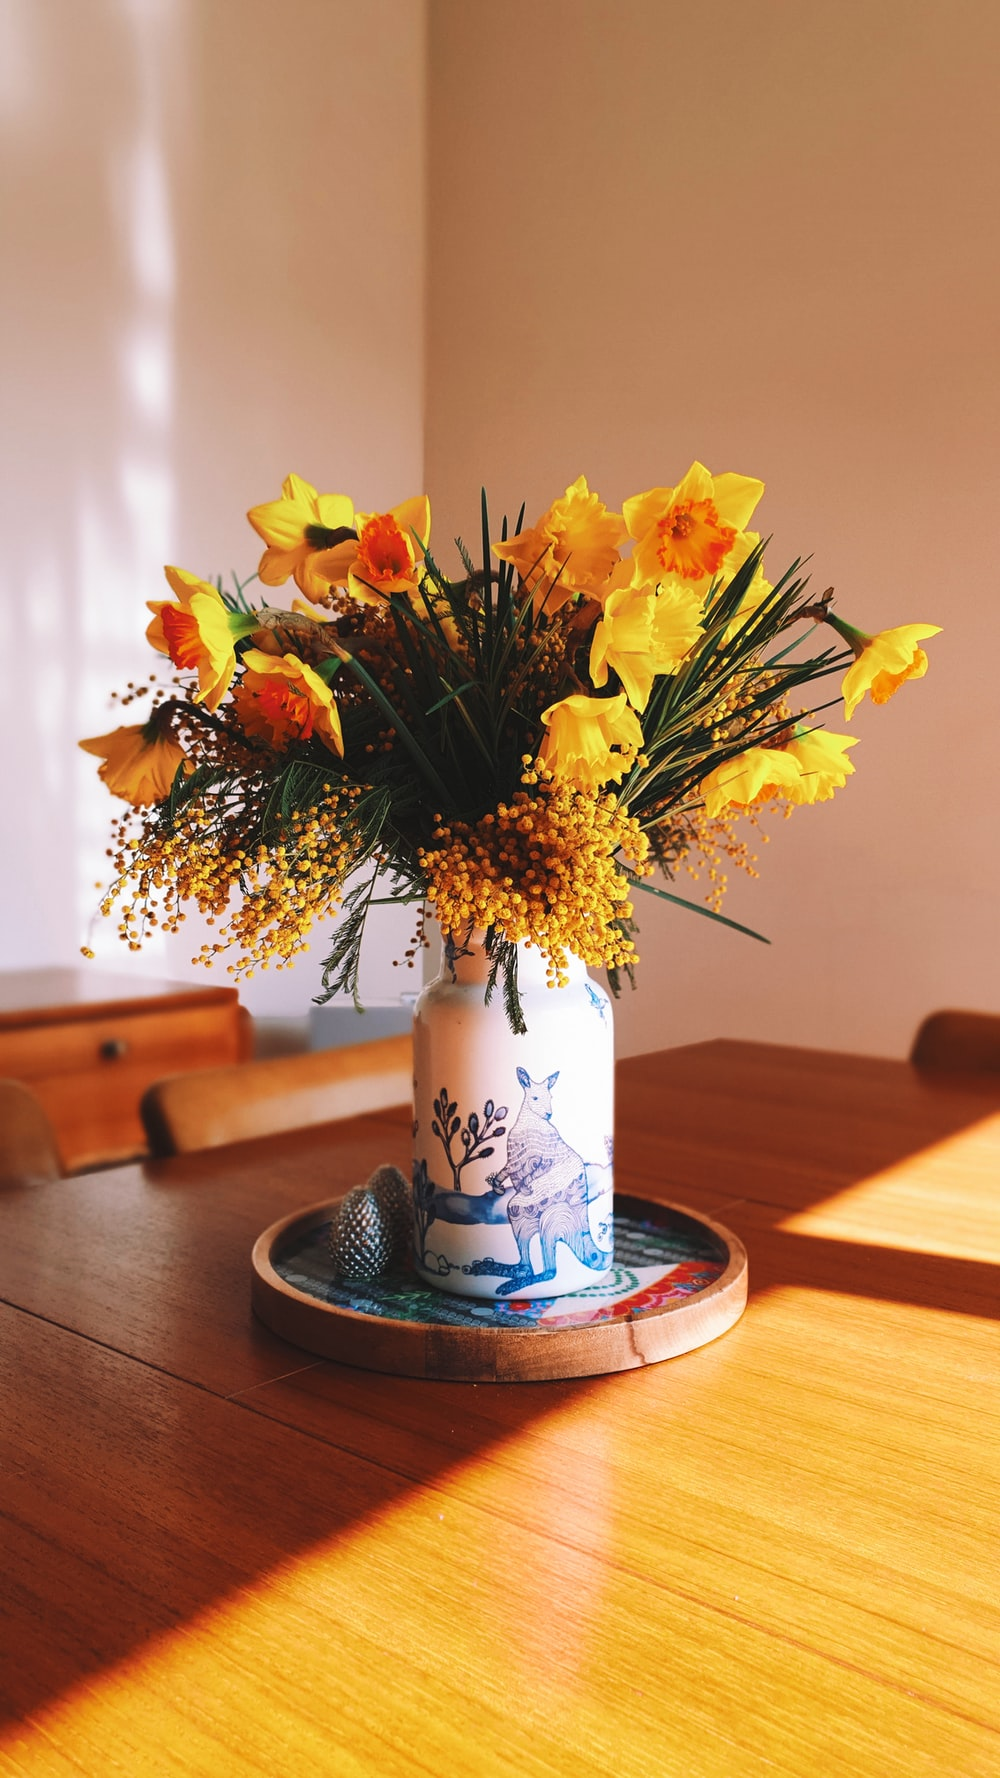 yellow petaled flowers on a vase